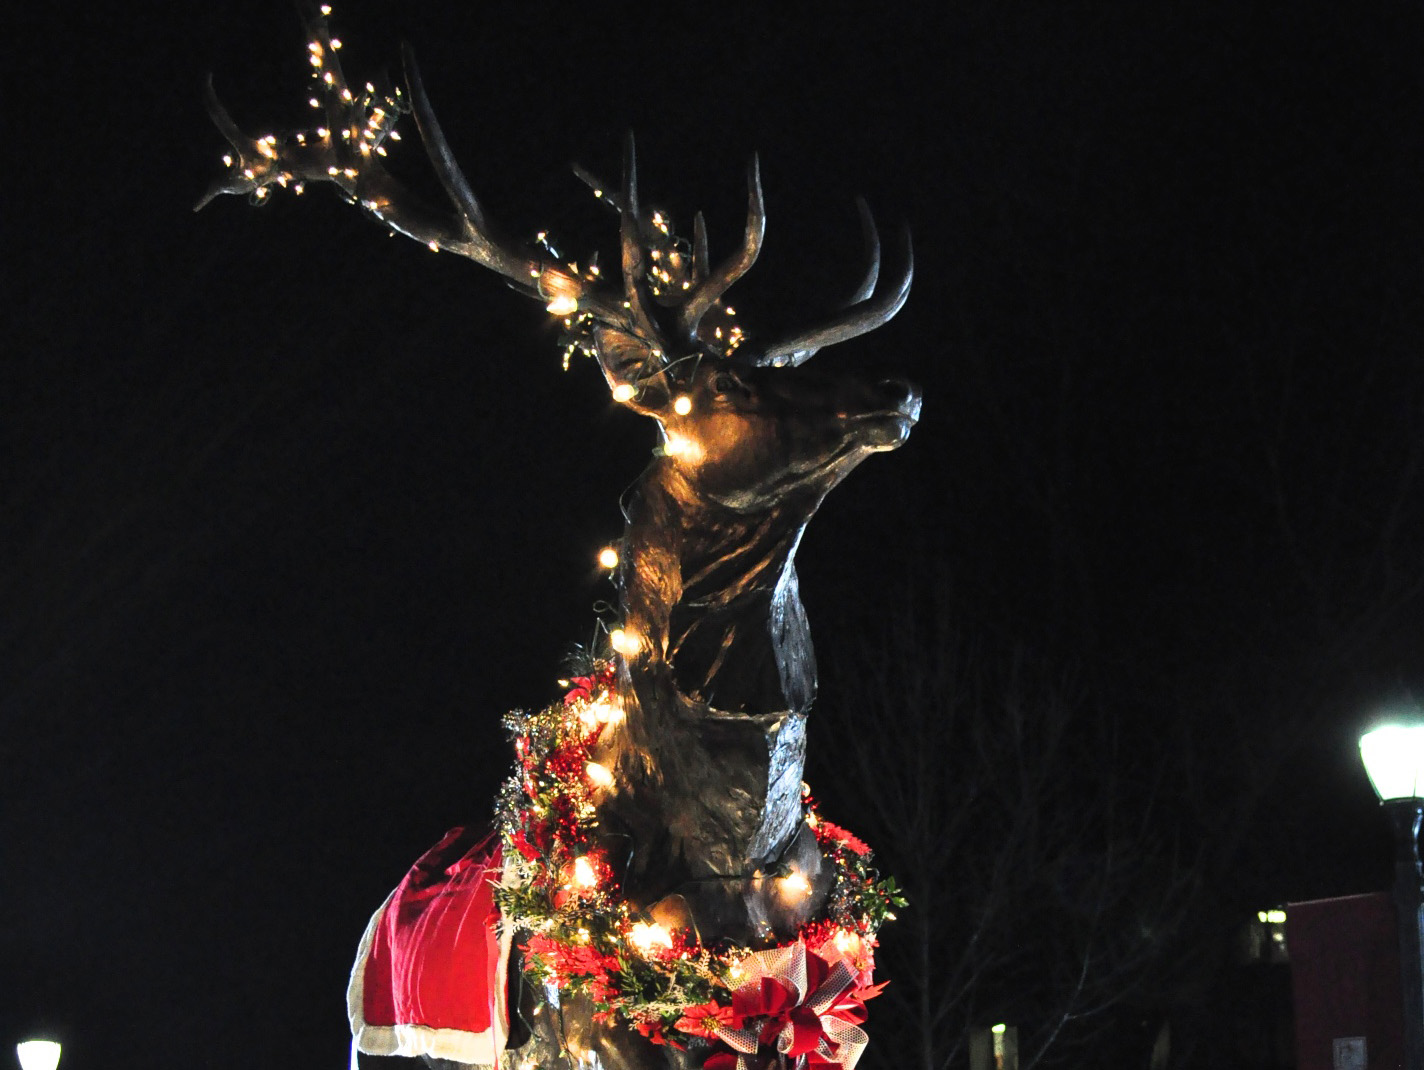 Stag statue with Christmas lights